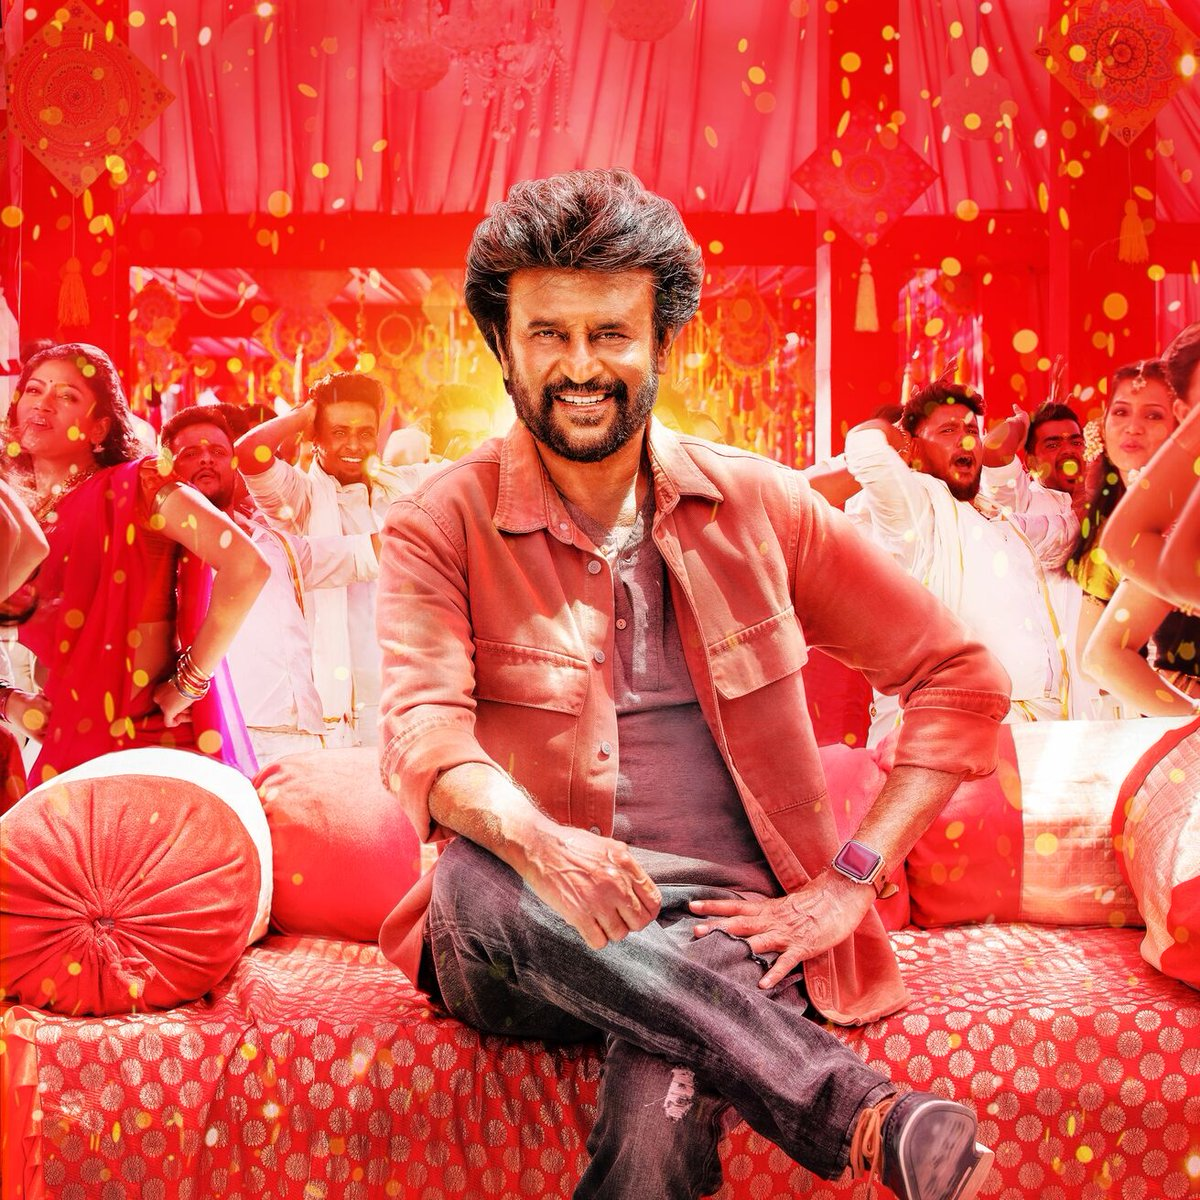 The superstar will be soon seen in AR Murugadoss' Darbar, scheduled to be released on 15 Jan 2020, in Tamil, Telugu and Hindi. Photo Courtesy: Darbar/ Twitter